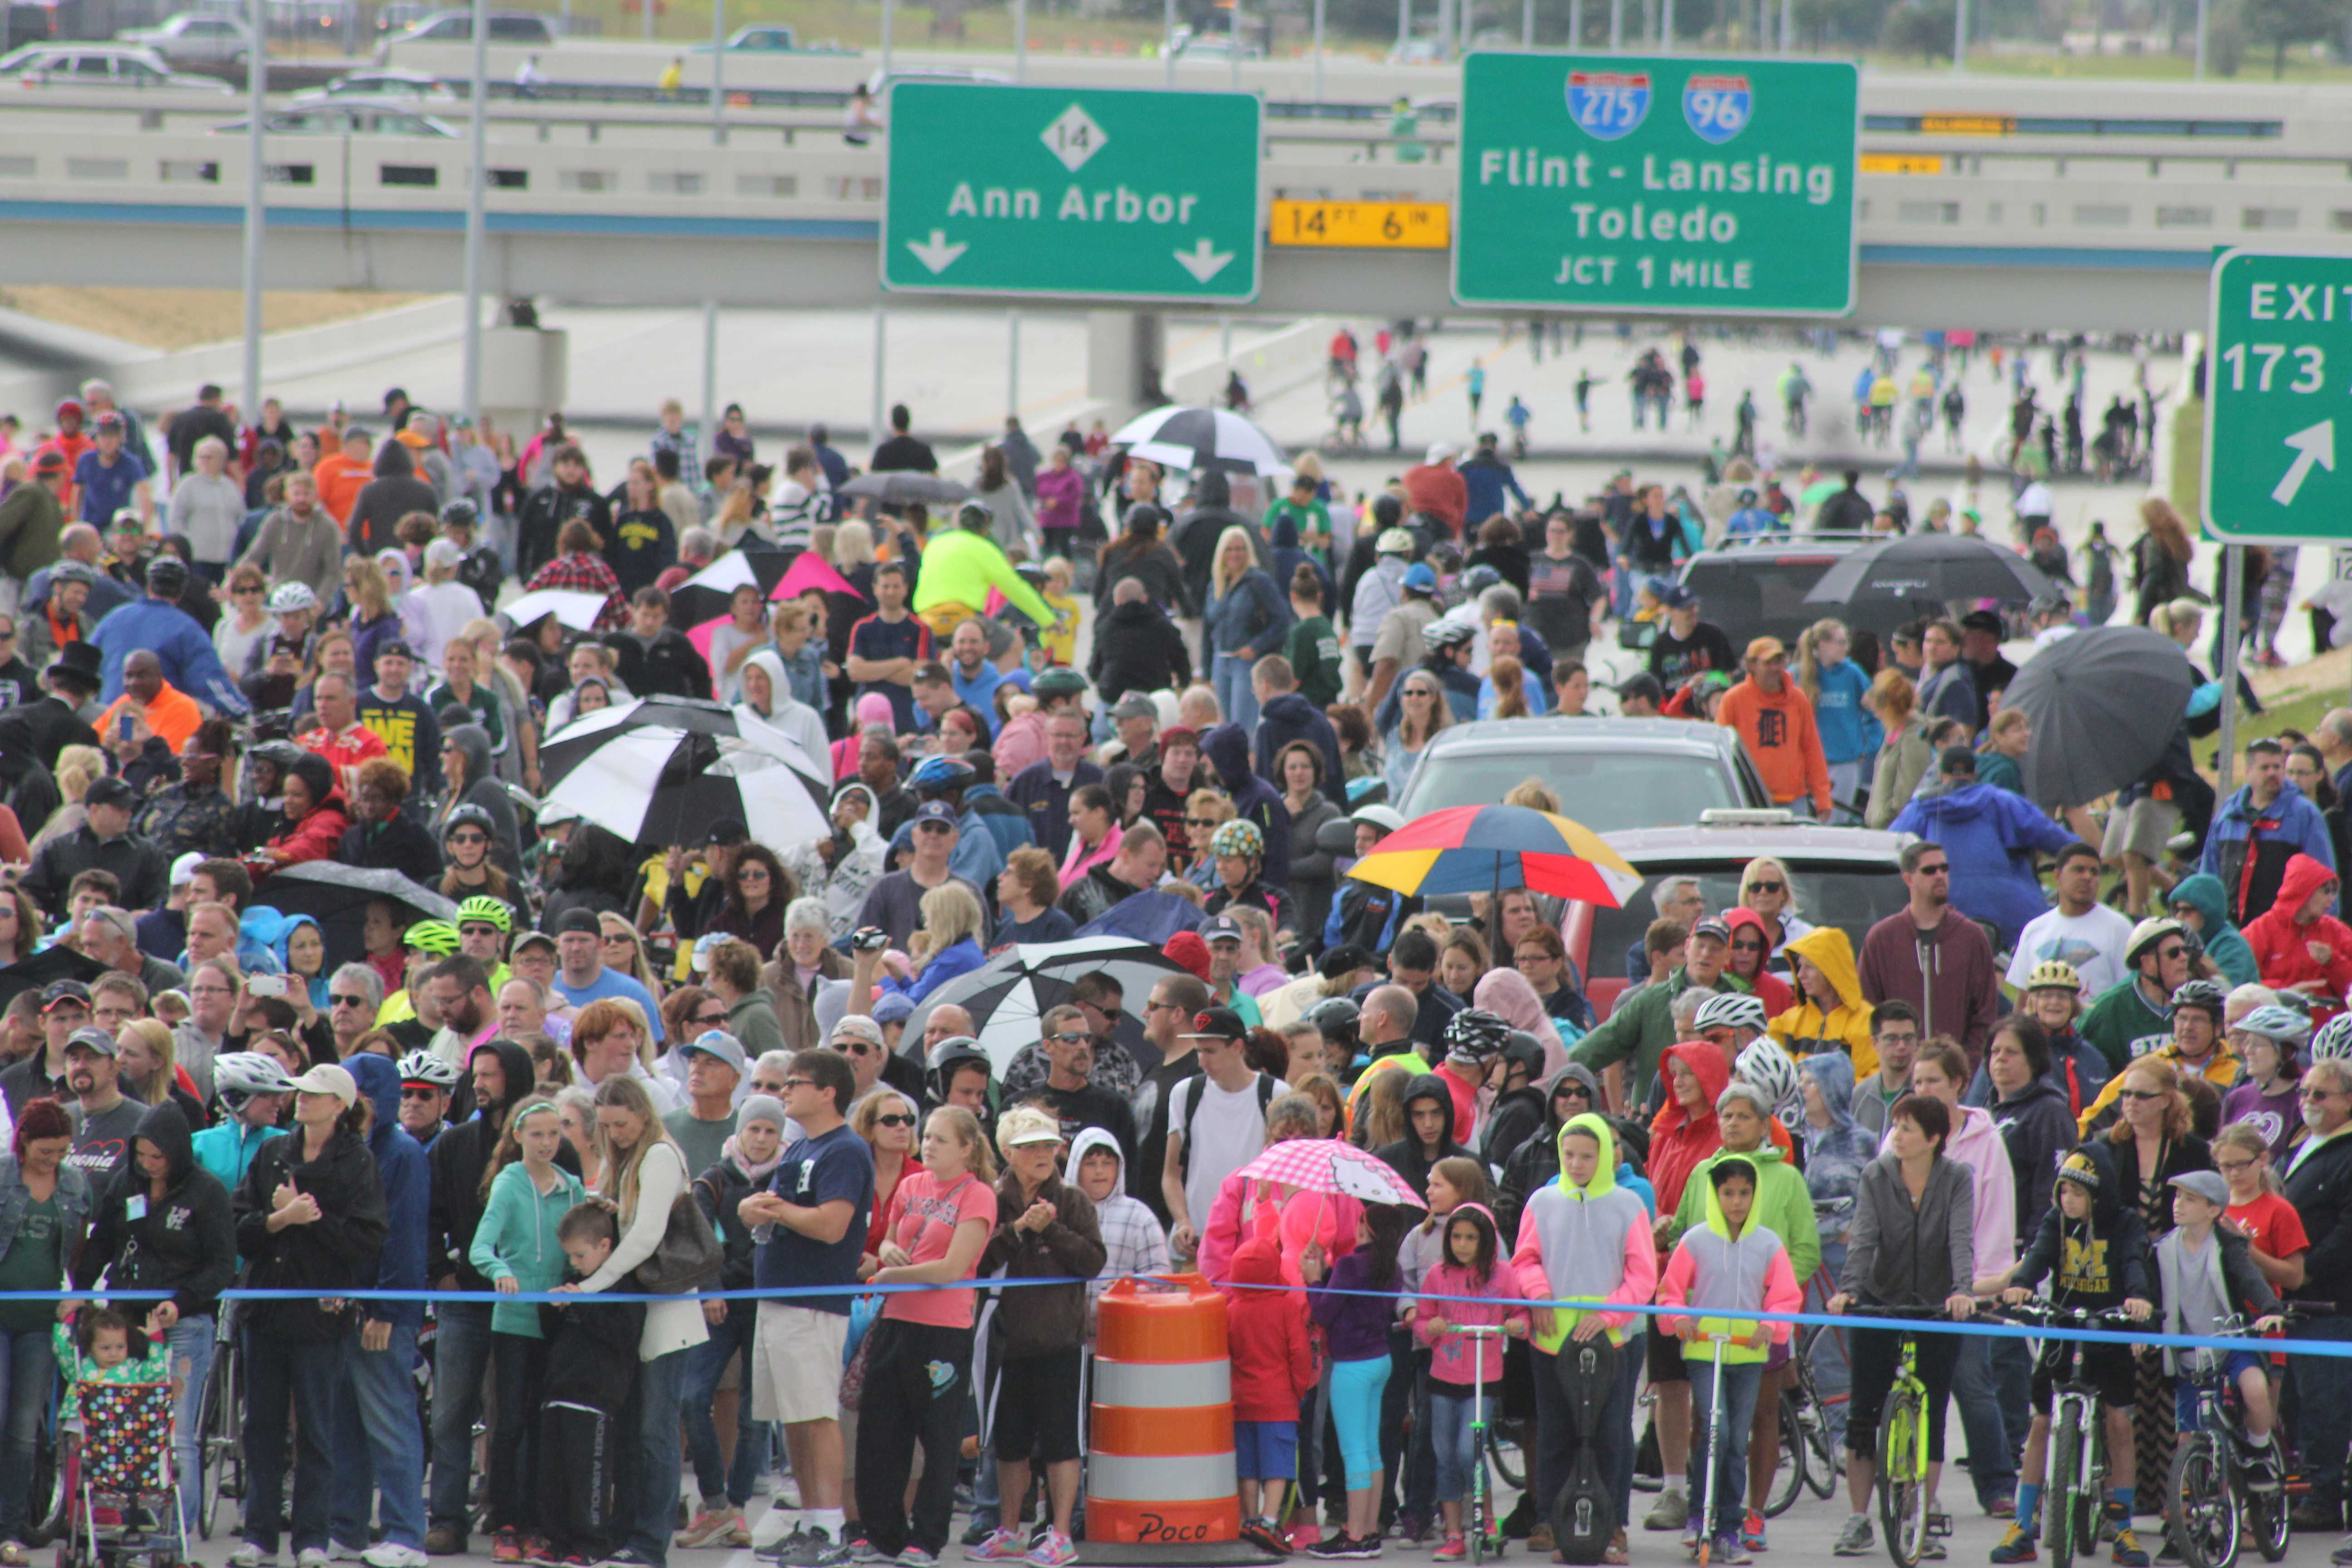 Local Residents wait in anticipation to walk on I-96 for the first time in over 40 years. Photo by Tyler Kabrovich.